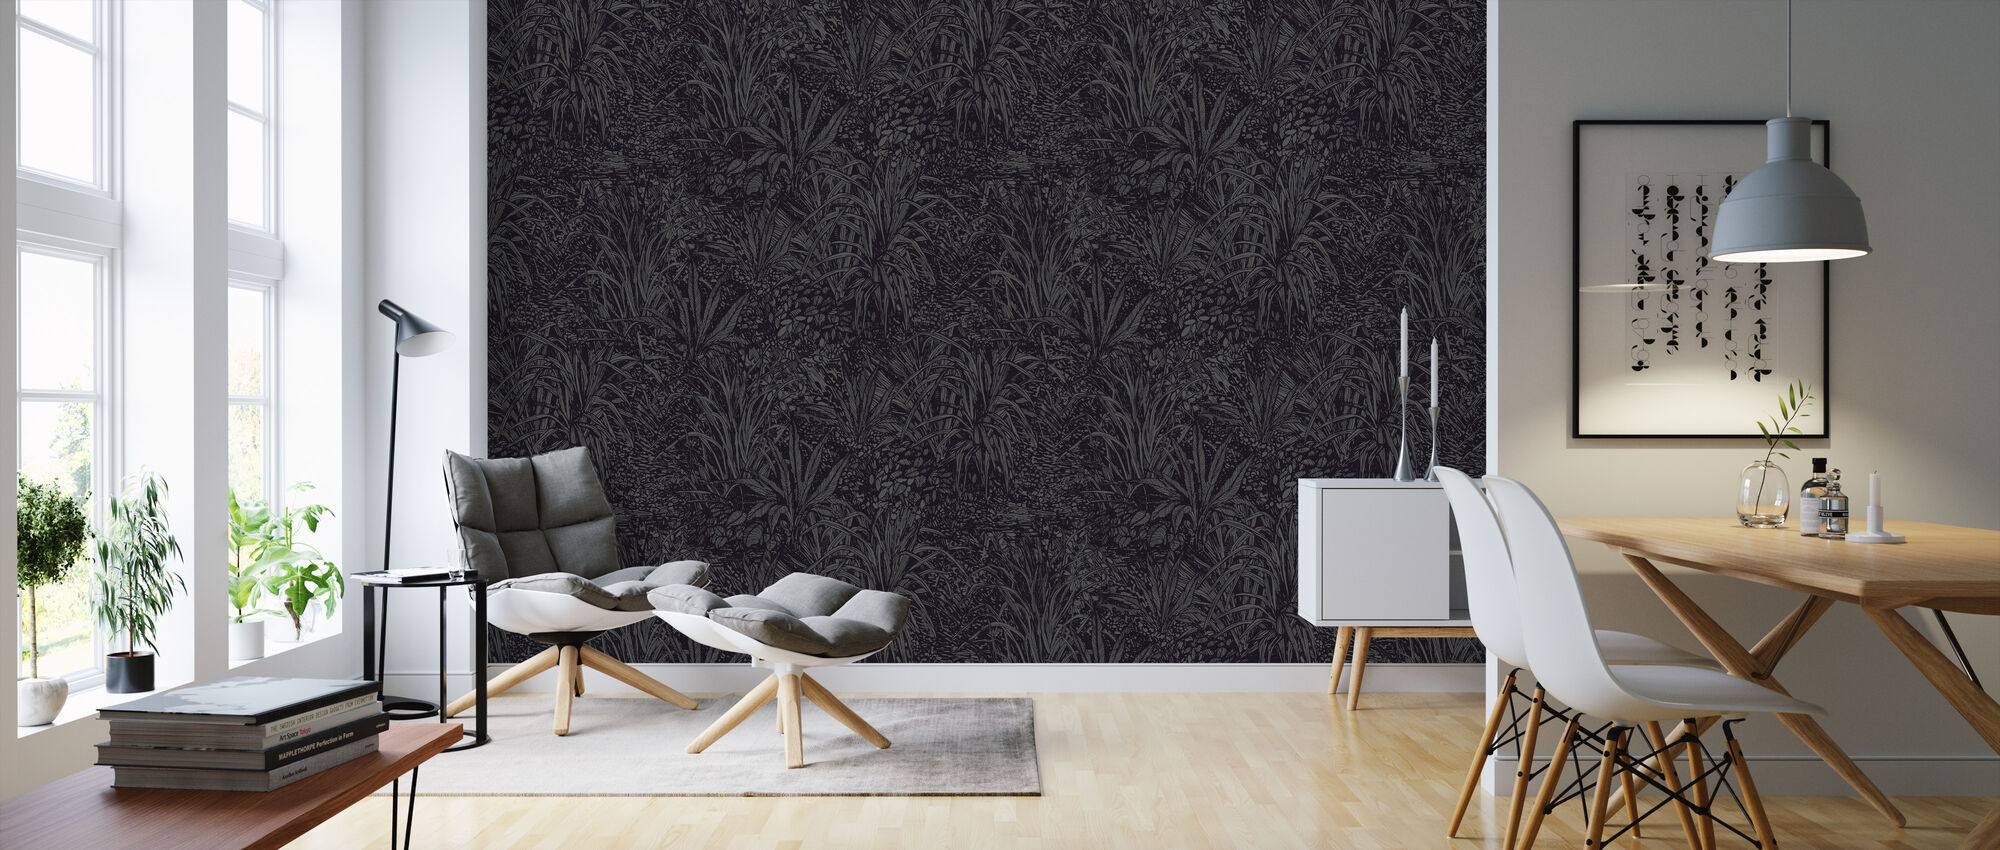 Jungle Panther - Wallpaper - Living Room